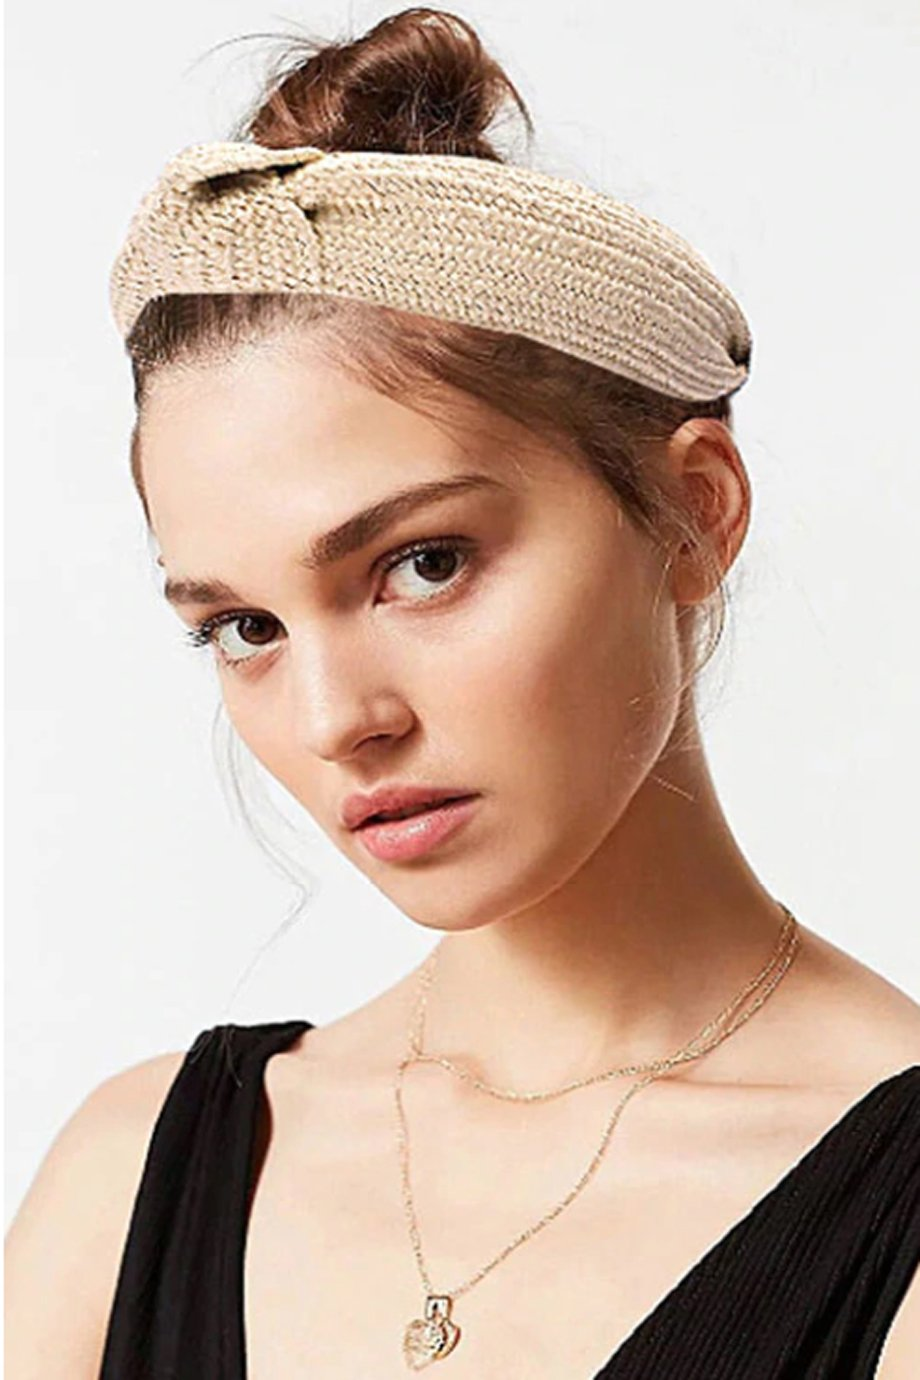 GIRLS KNOTTED TURBAN KNOT